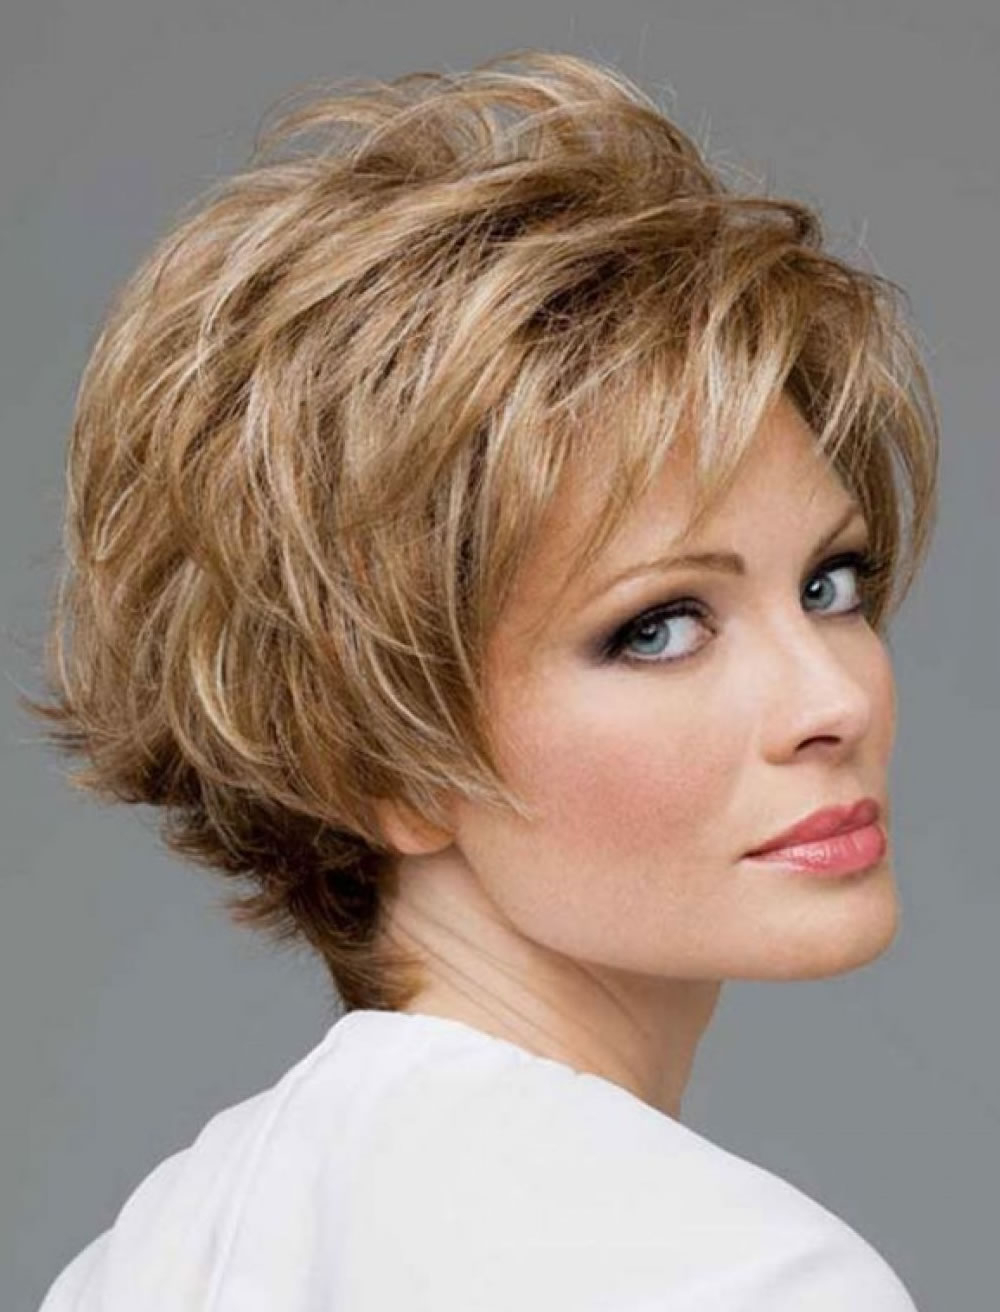 Dashing Short Haircut For 2018 Women Over 40 To 60 – Hairstyles for Short Haircuts Over 40